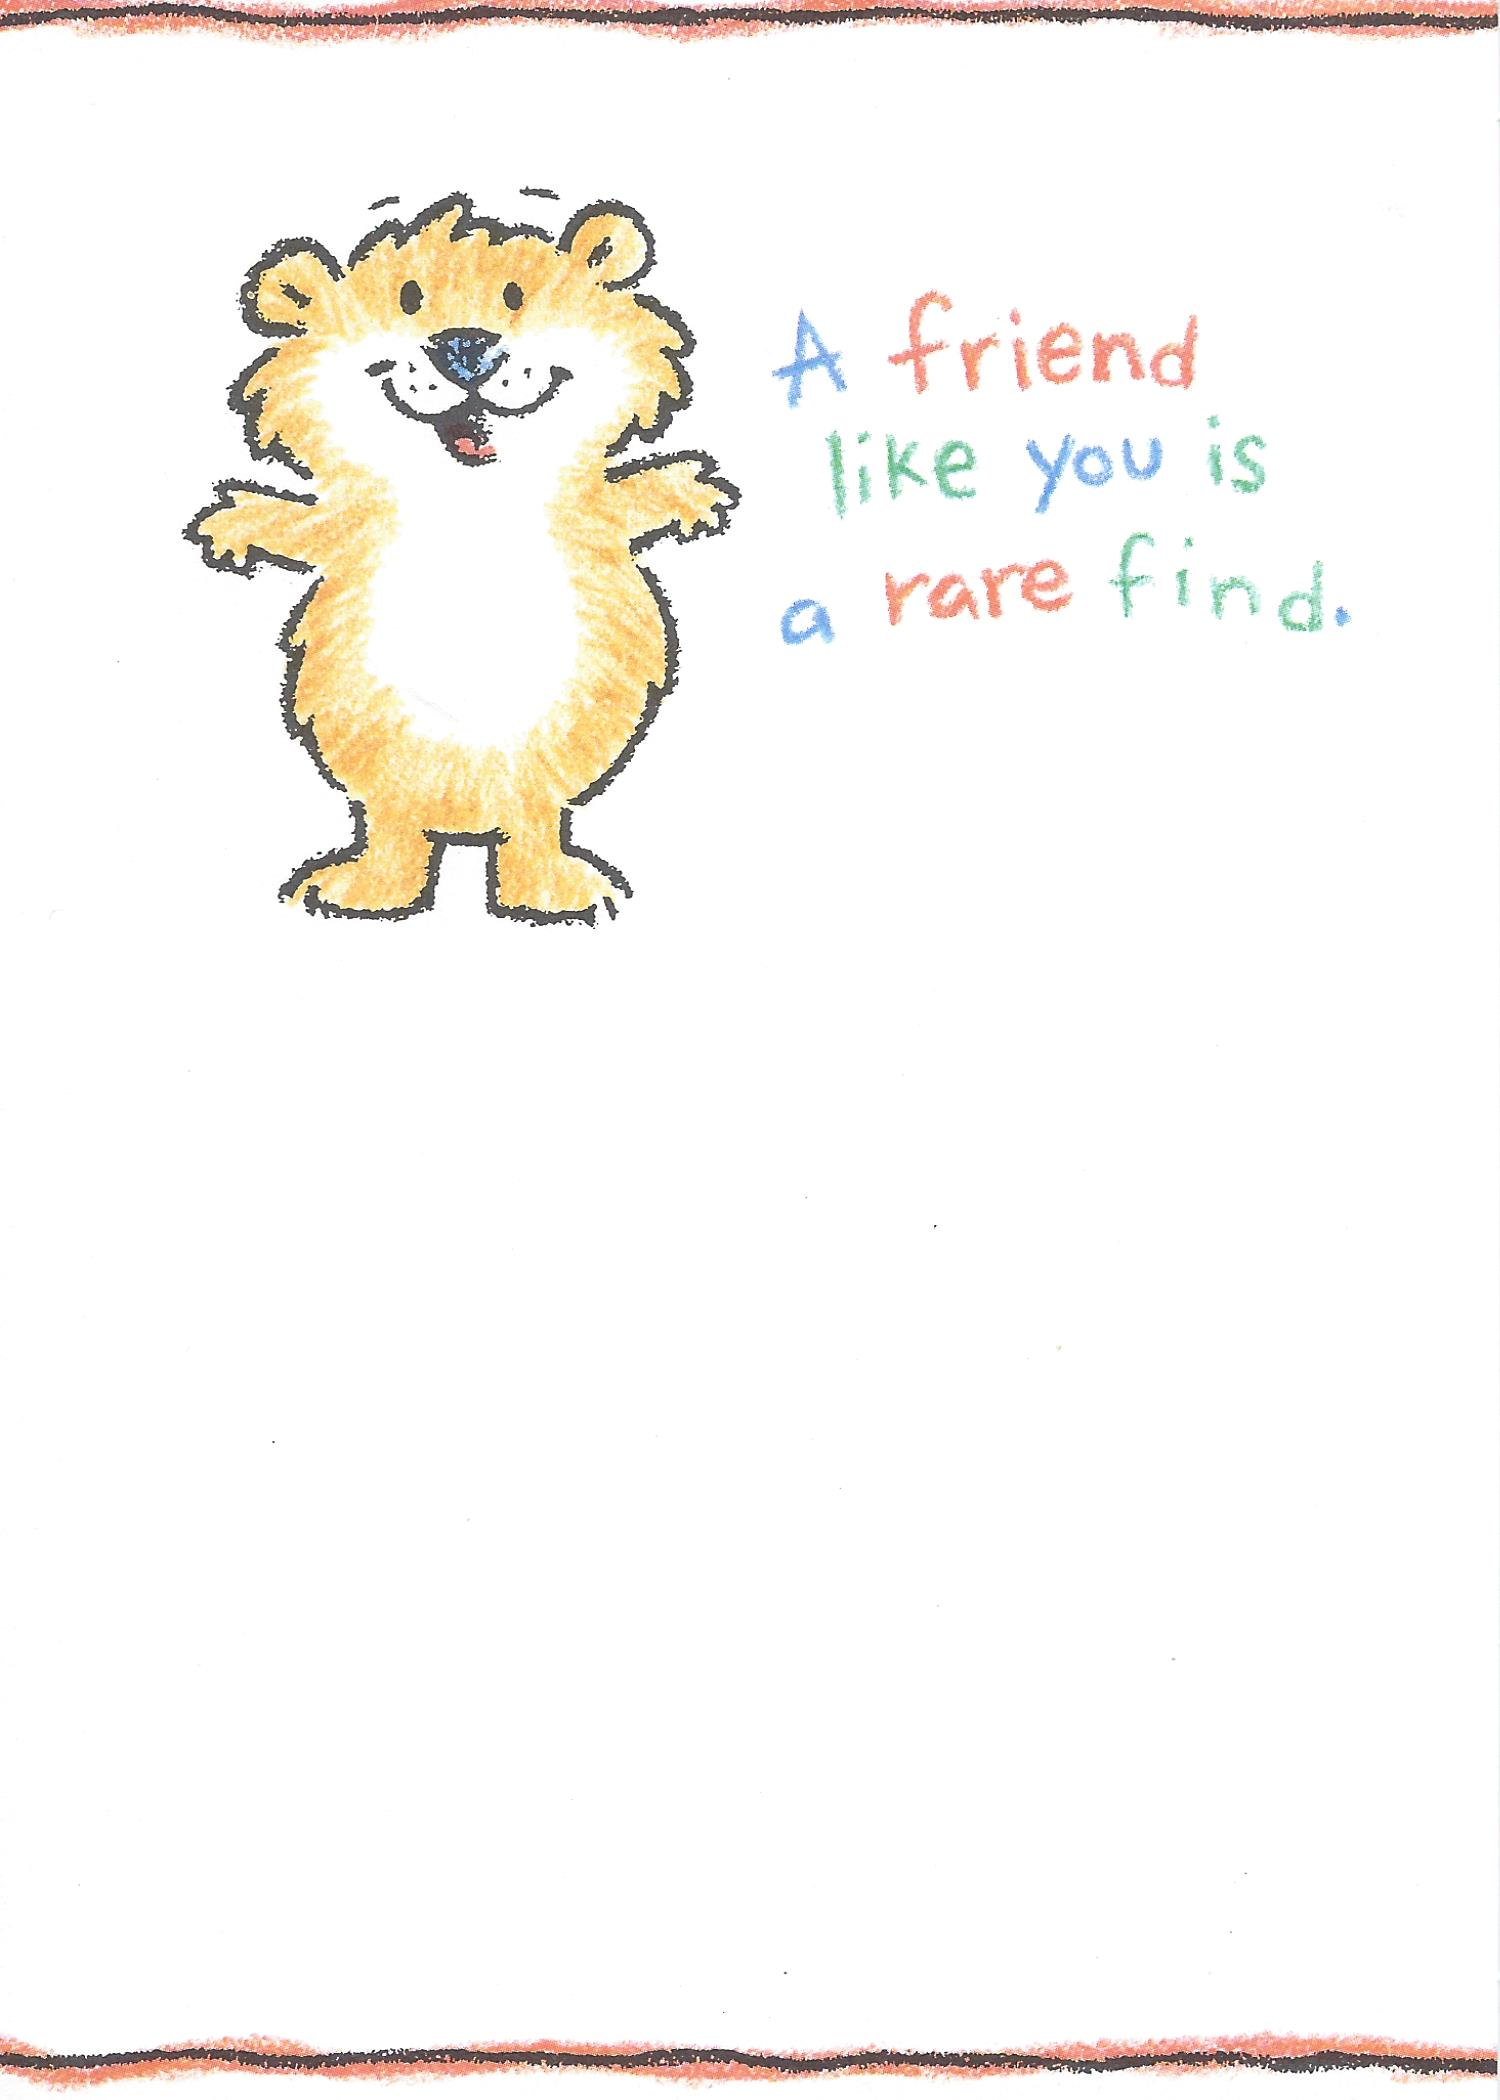 A friend like you is a rare find.